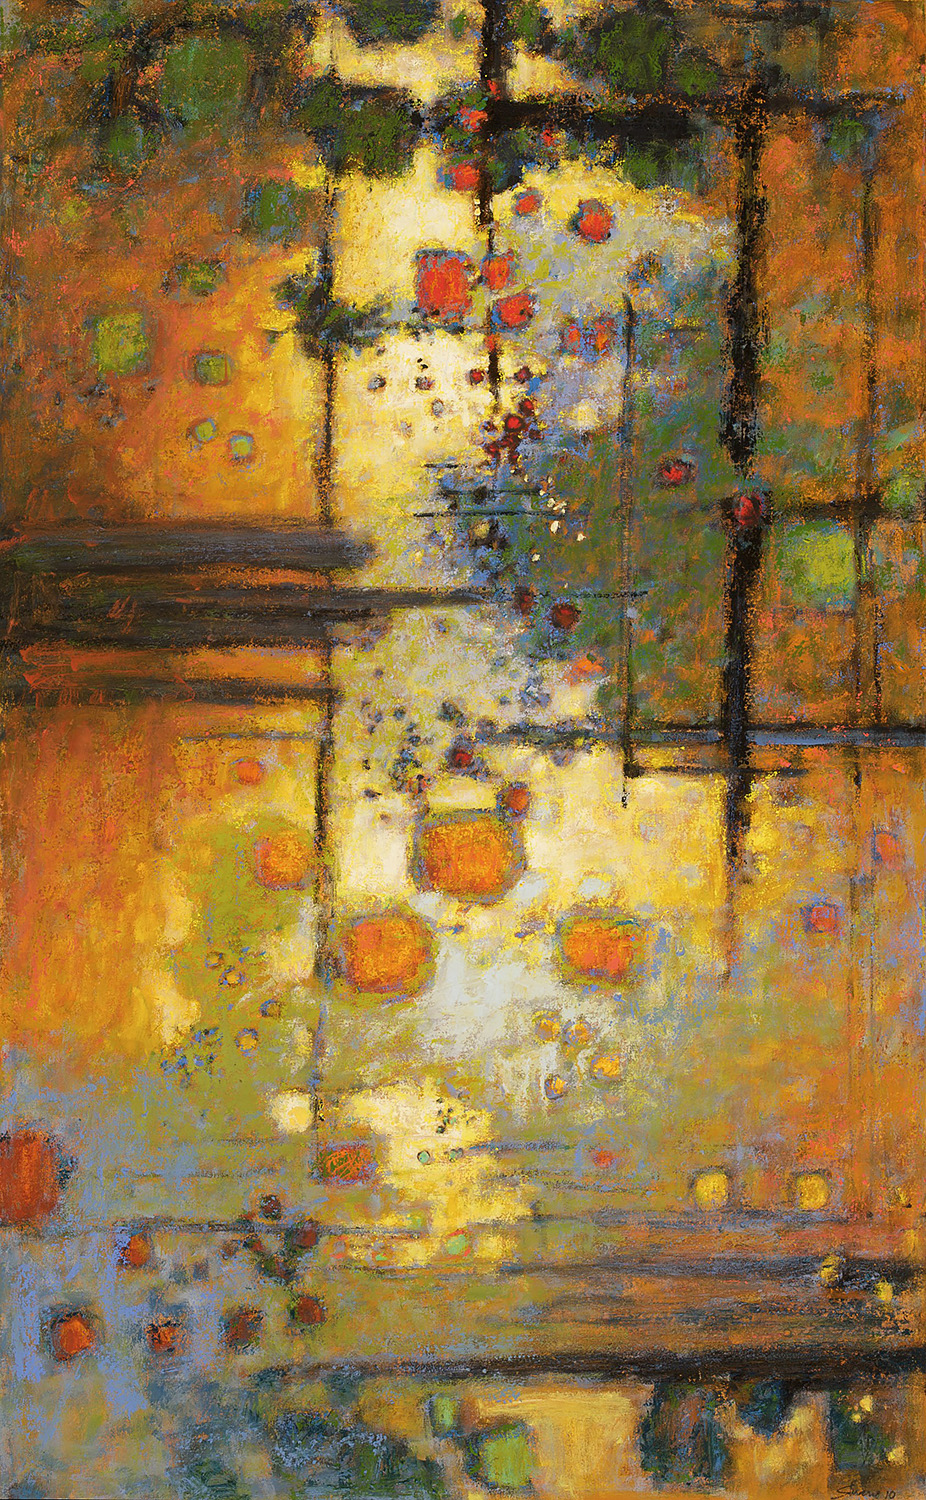 Complexities Released  | oil on canvas | 51 x 32"